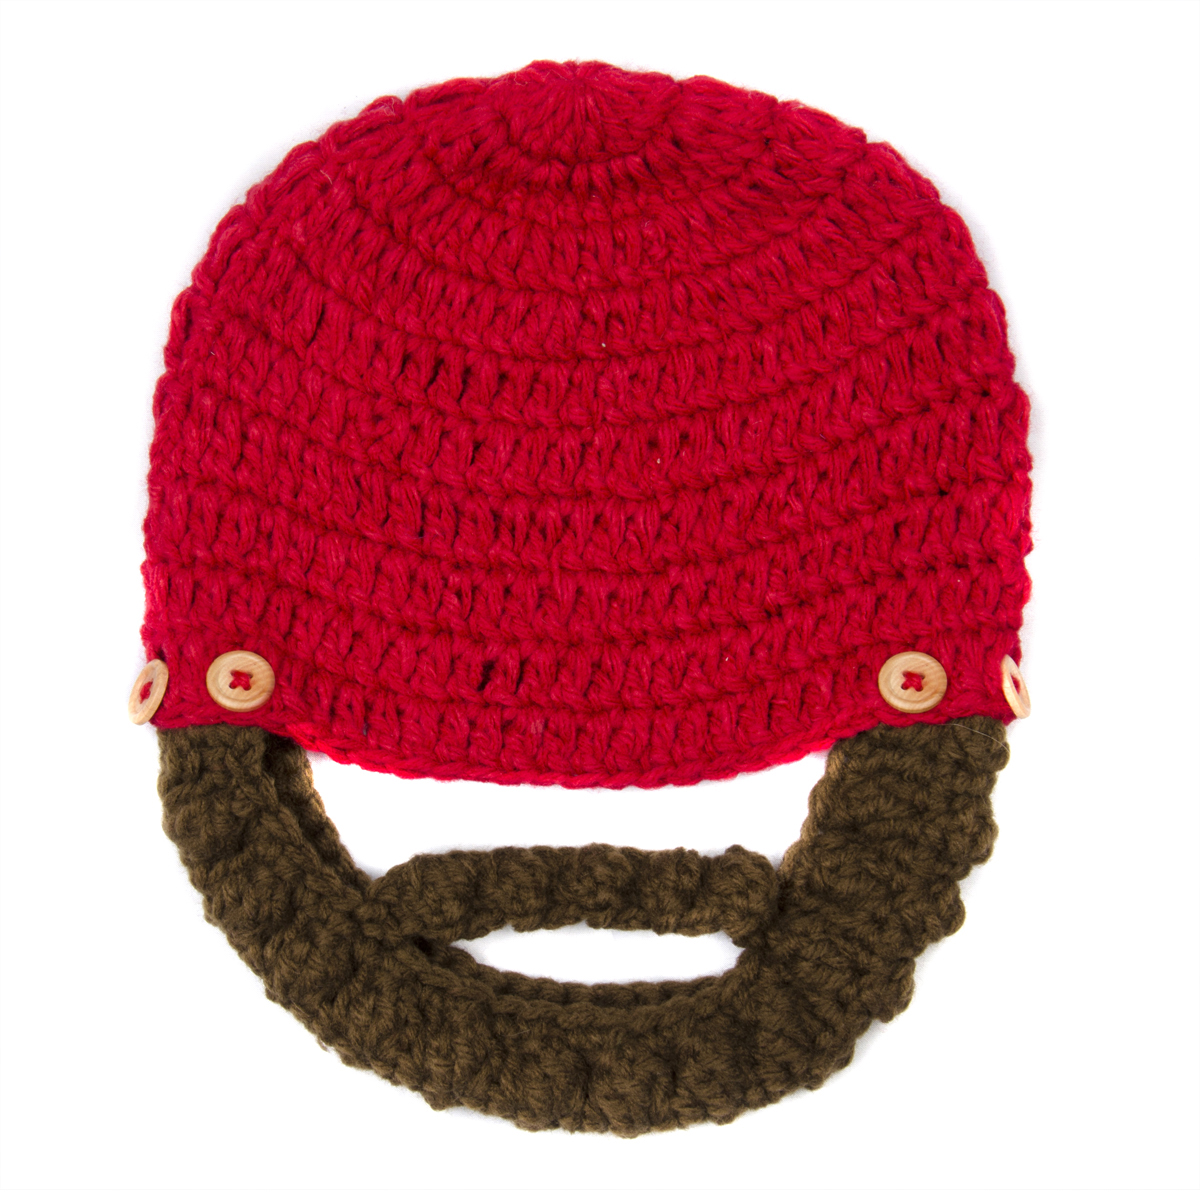 9f87cf6fca6  SOLD OUT Red Beanie with Beard - Boy Girl Toddler Kid (Large). Roll Off  Image to Close Zoom Window